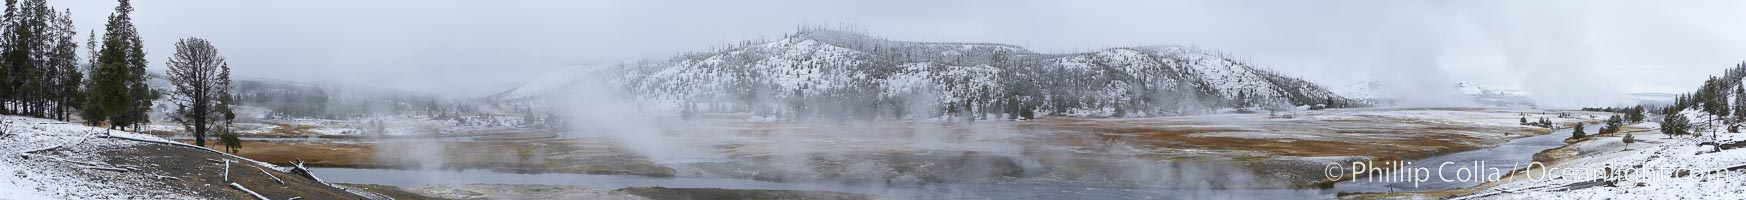 Firehole River, natural hot spring water steaming in cold winter air, panorama, Midway Geyser Basin, Yellowstone National Park, Wyoming